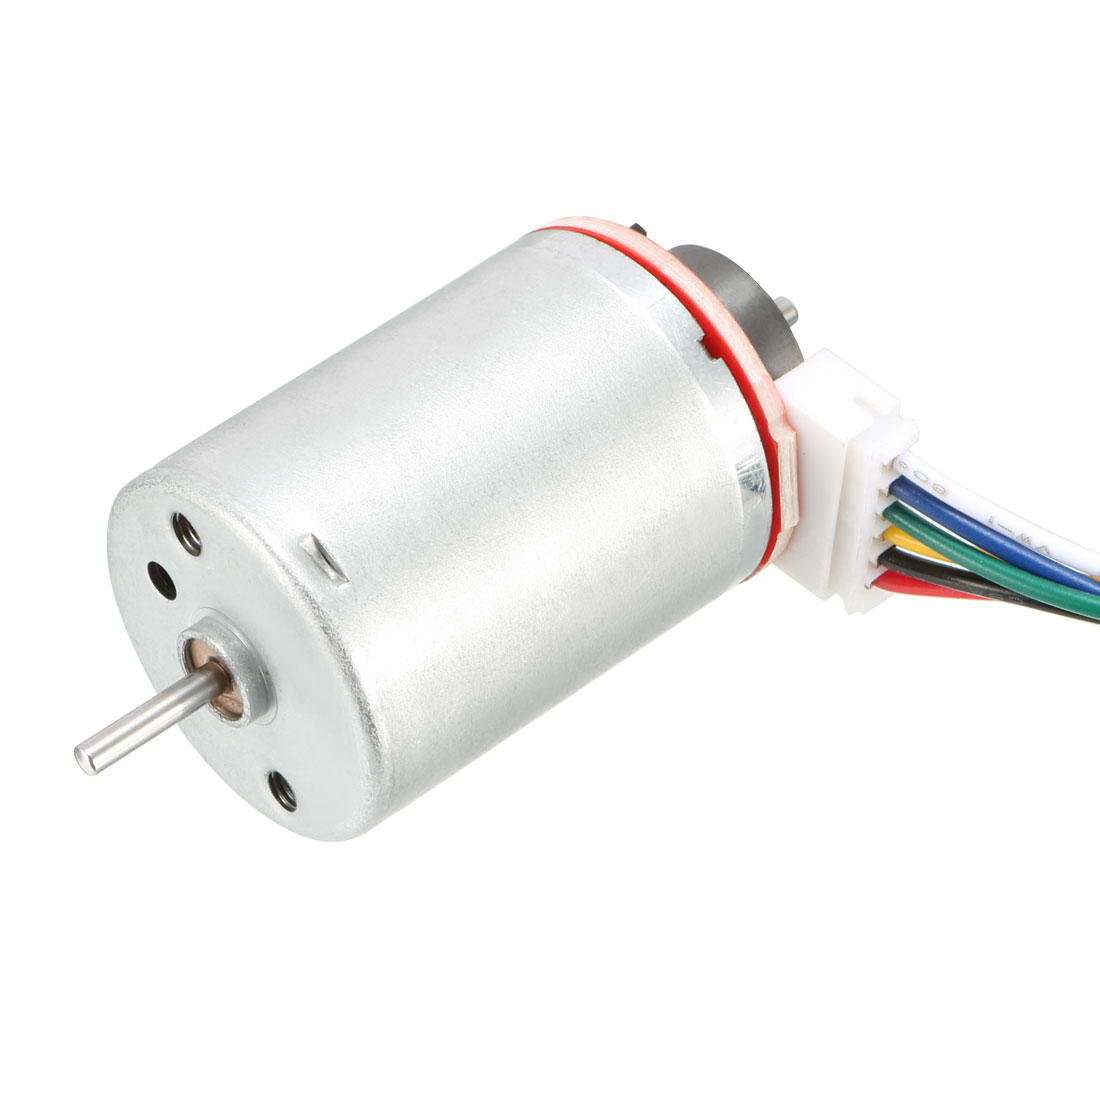 Micro Motor DC 12V 4300RPM 6 Wire High Speed Encoder Motor for DIY Hobby Toy Car